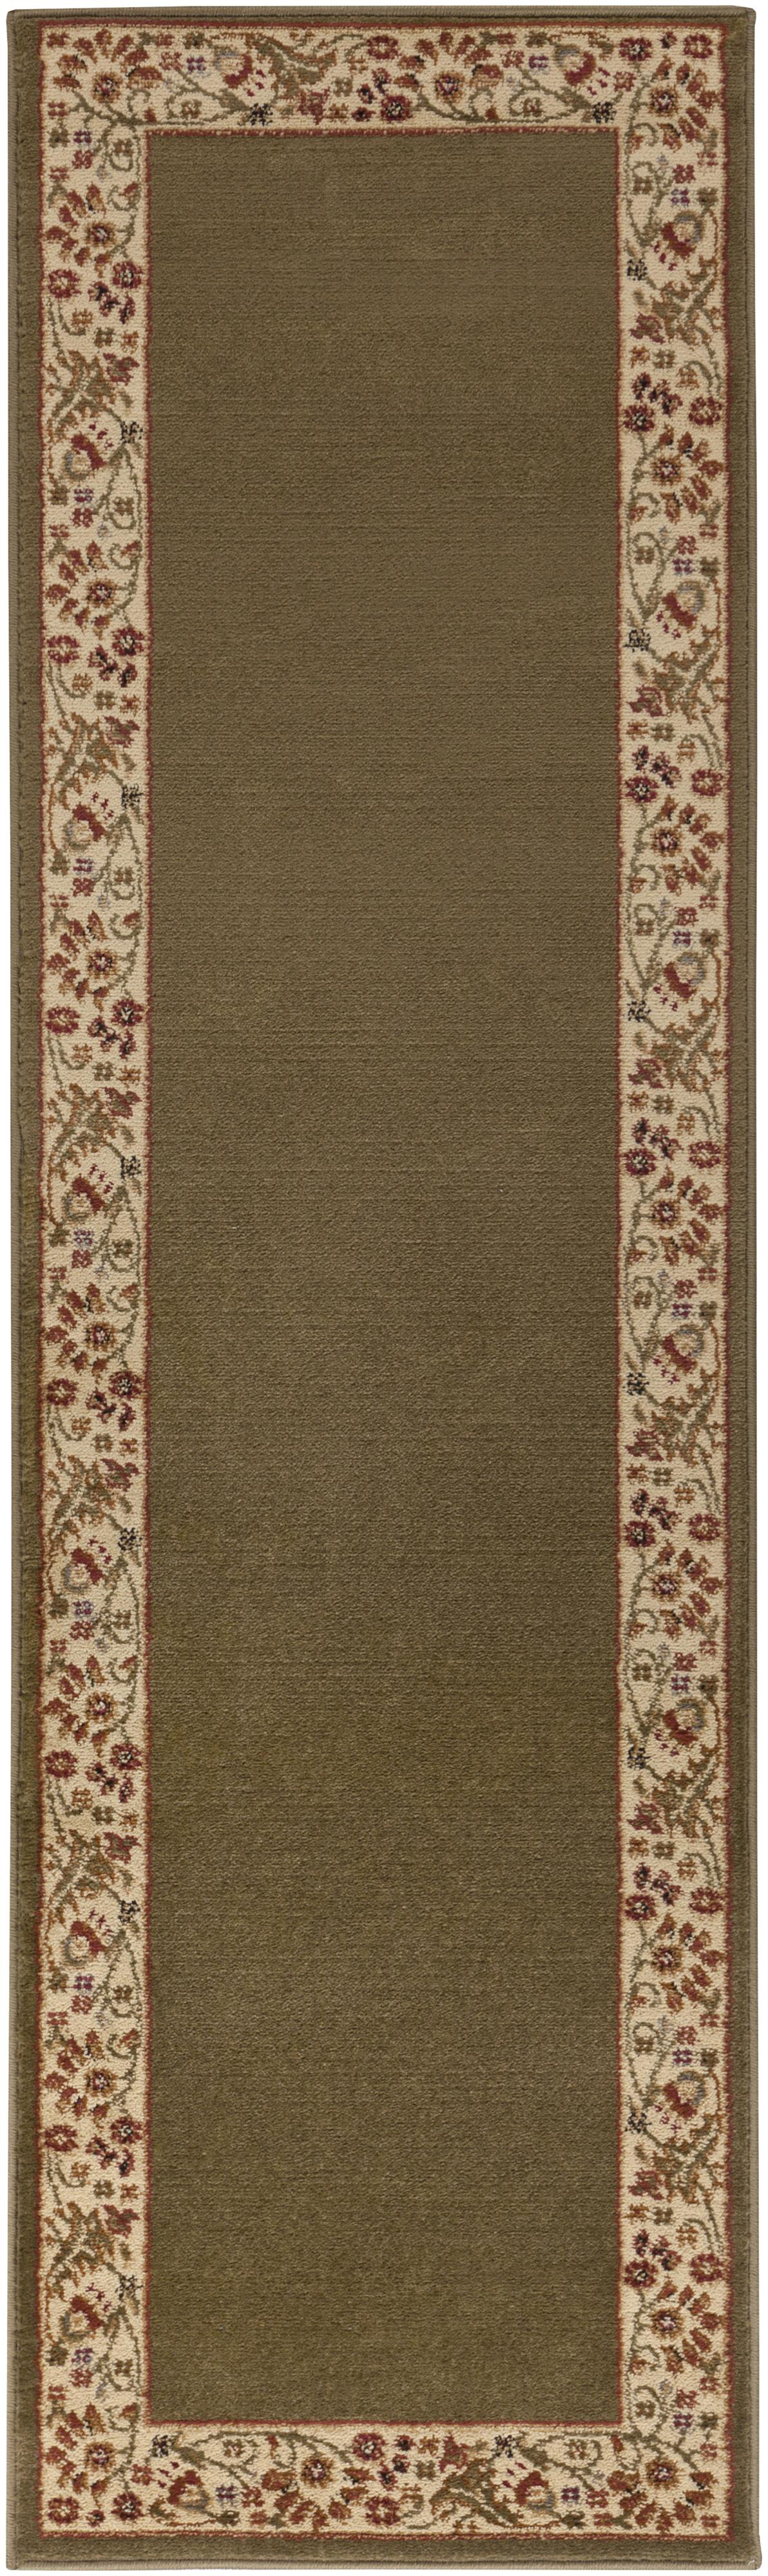 "Surya Midtown 2'2"" x 7'6"" - Item Number: MID4745-2276"